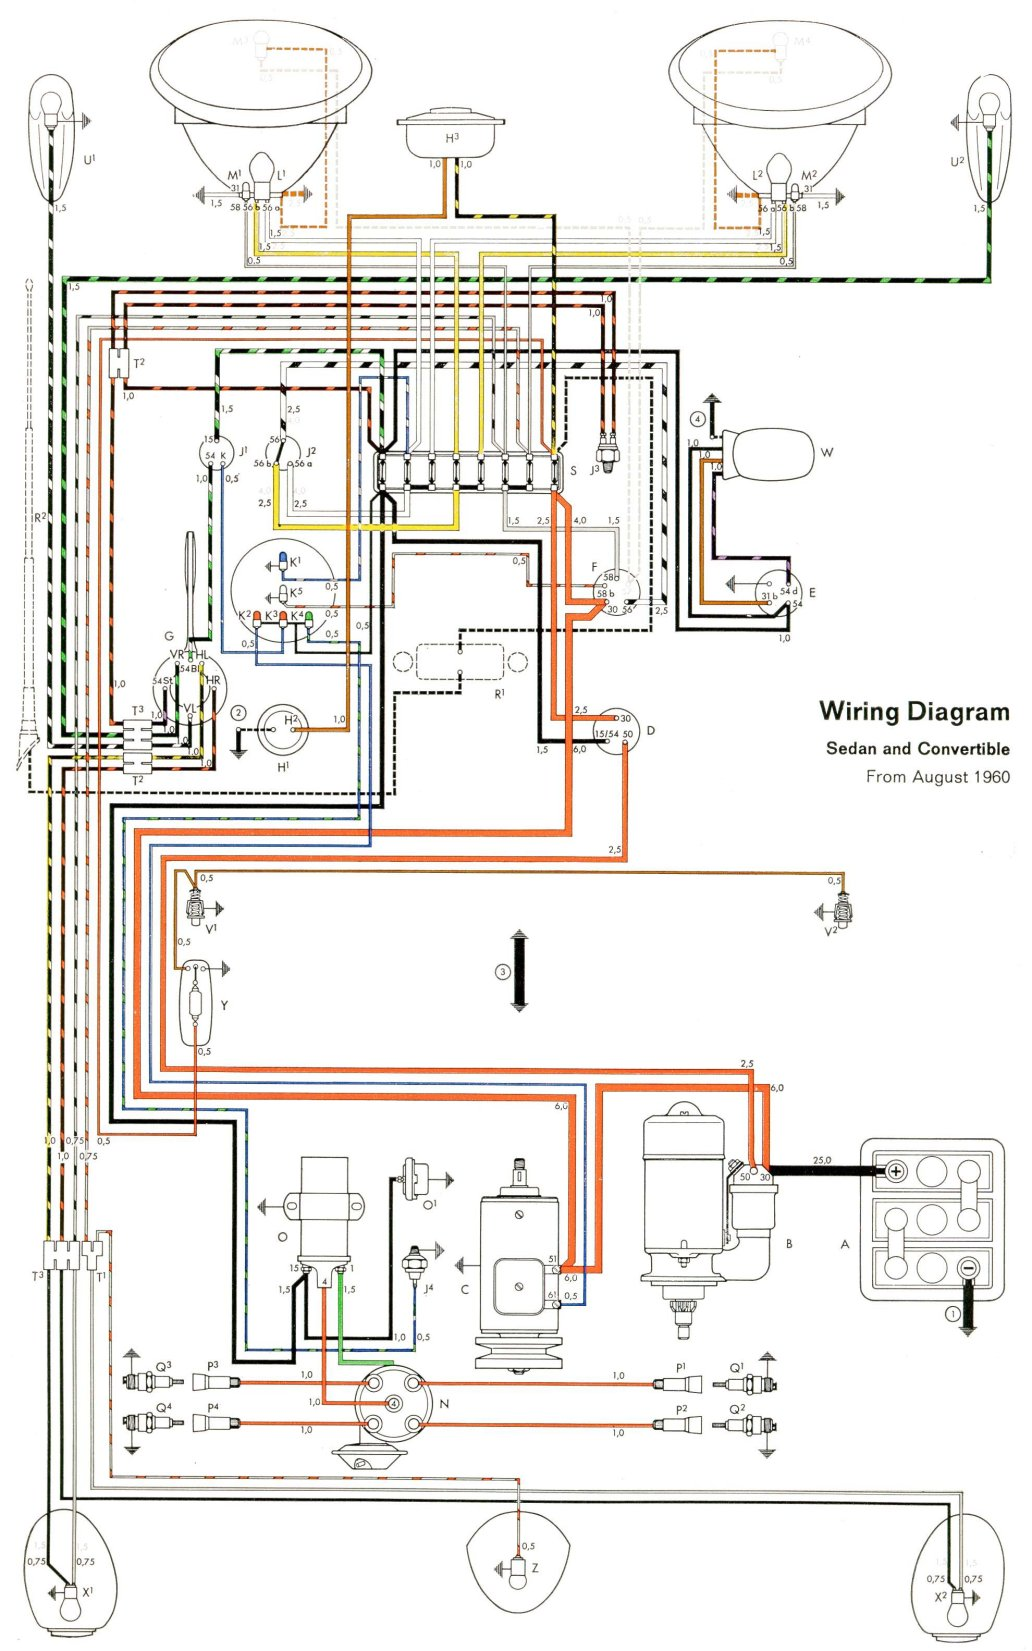 69 beetle wiring diagram anything wiring diagrams u2022 rh johnparkinson me 65 VW Van 67 VW Van